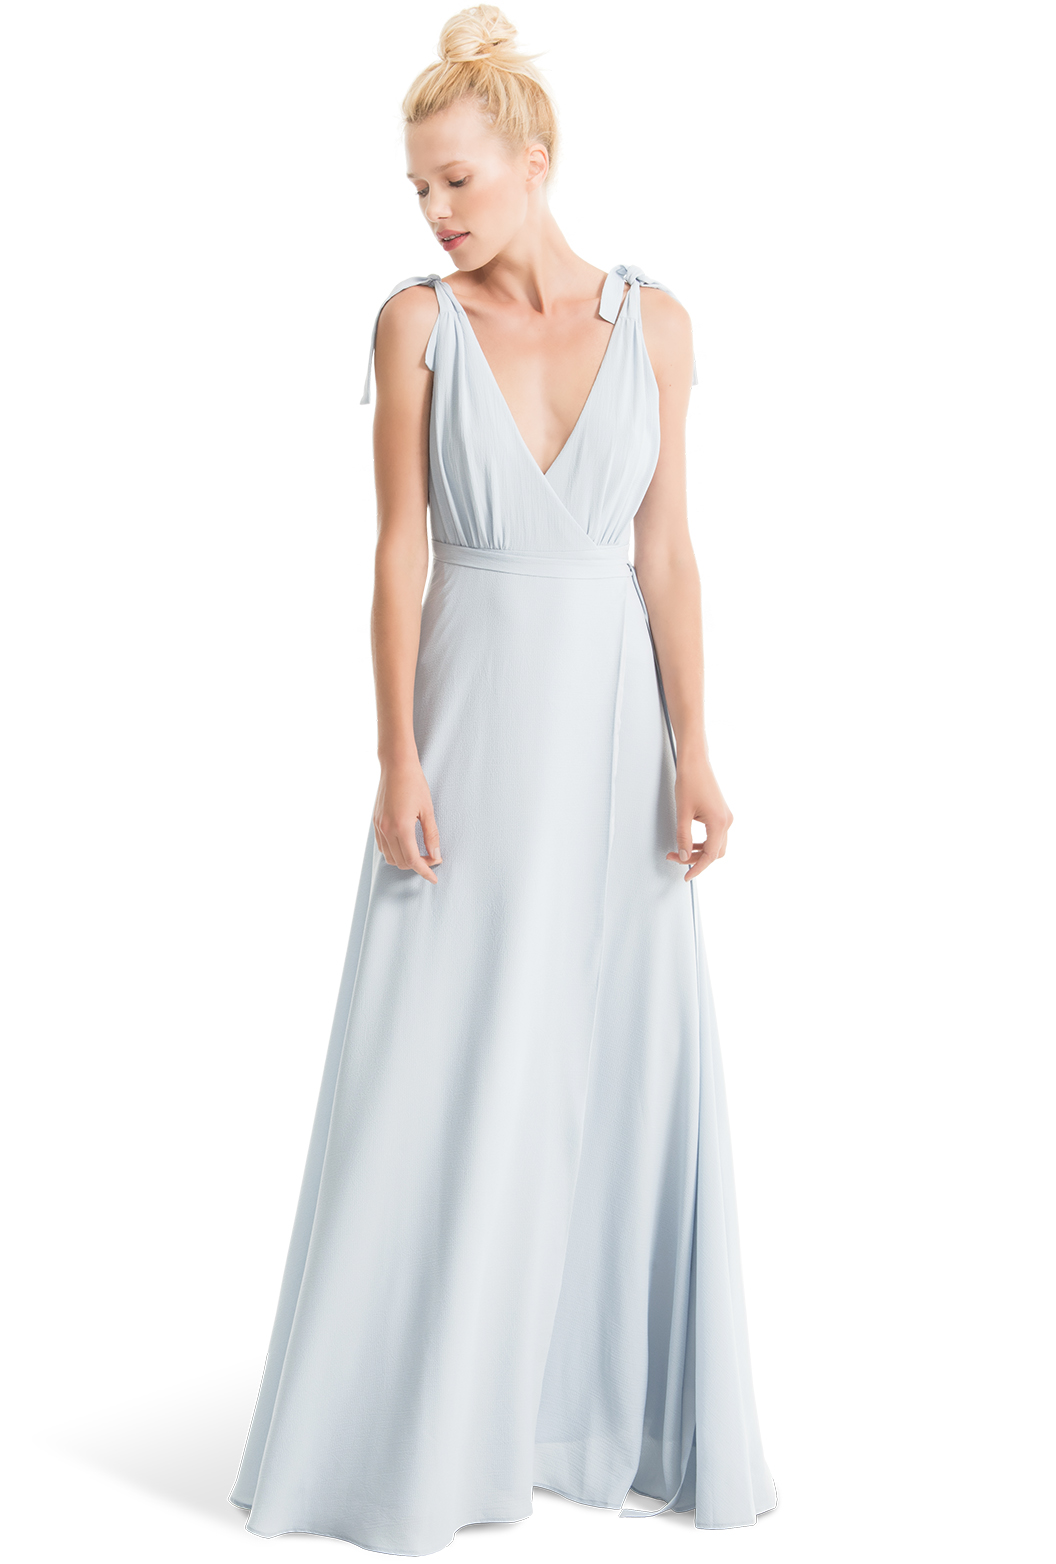 Anna Long in cloud light blue crepe by Joanna August Bridesmaids